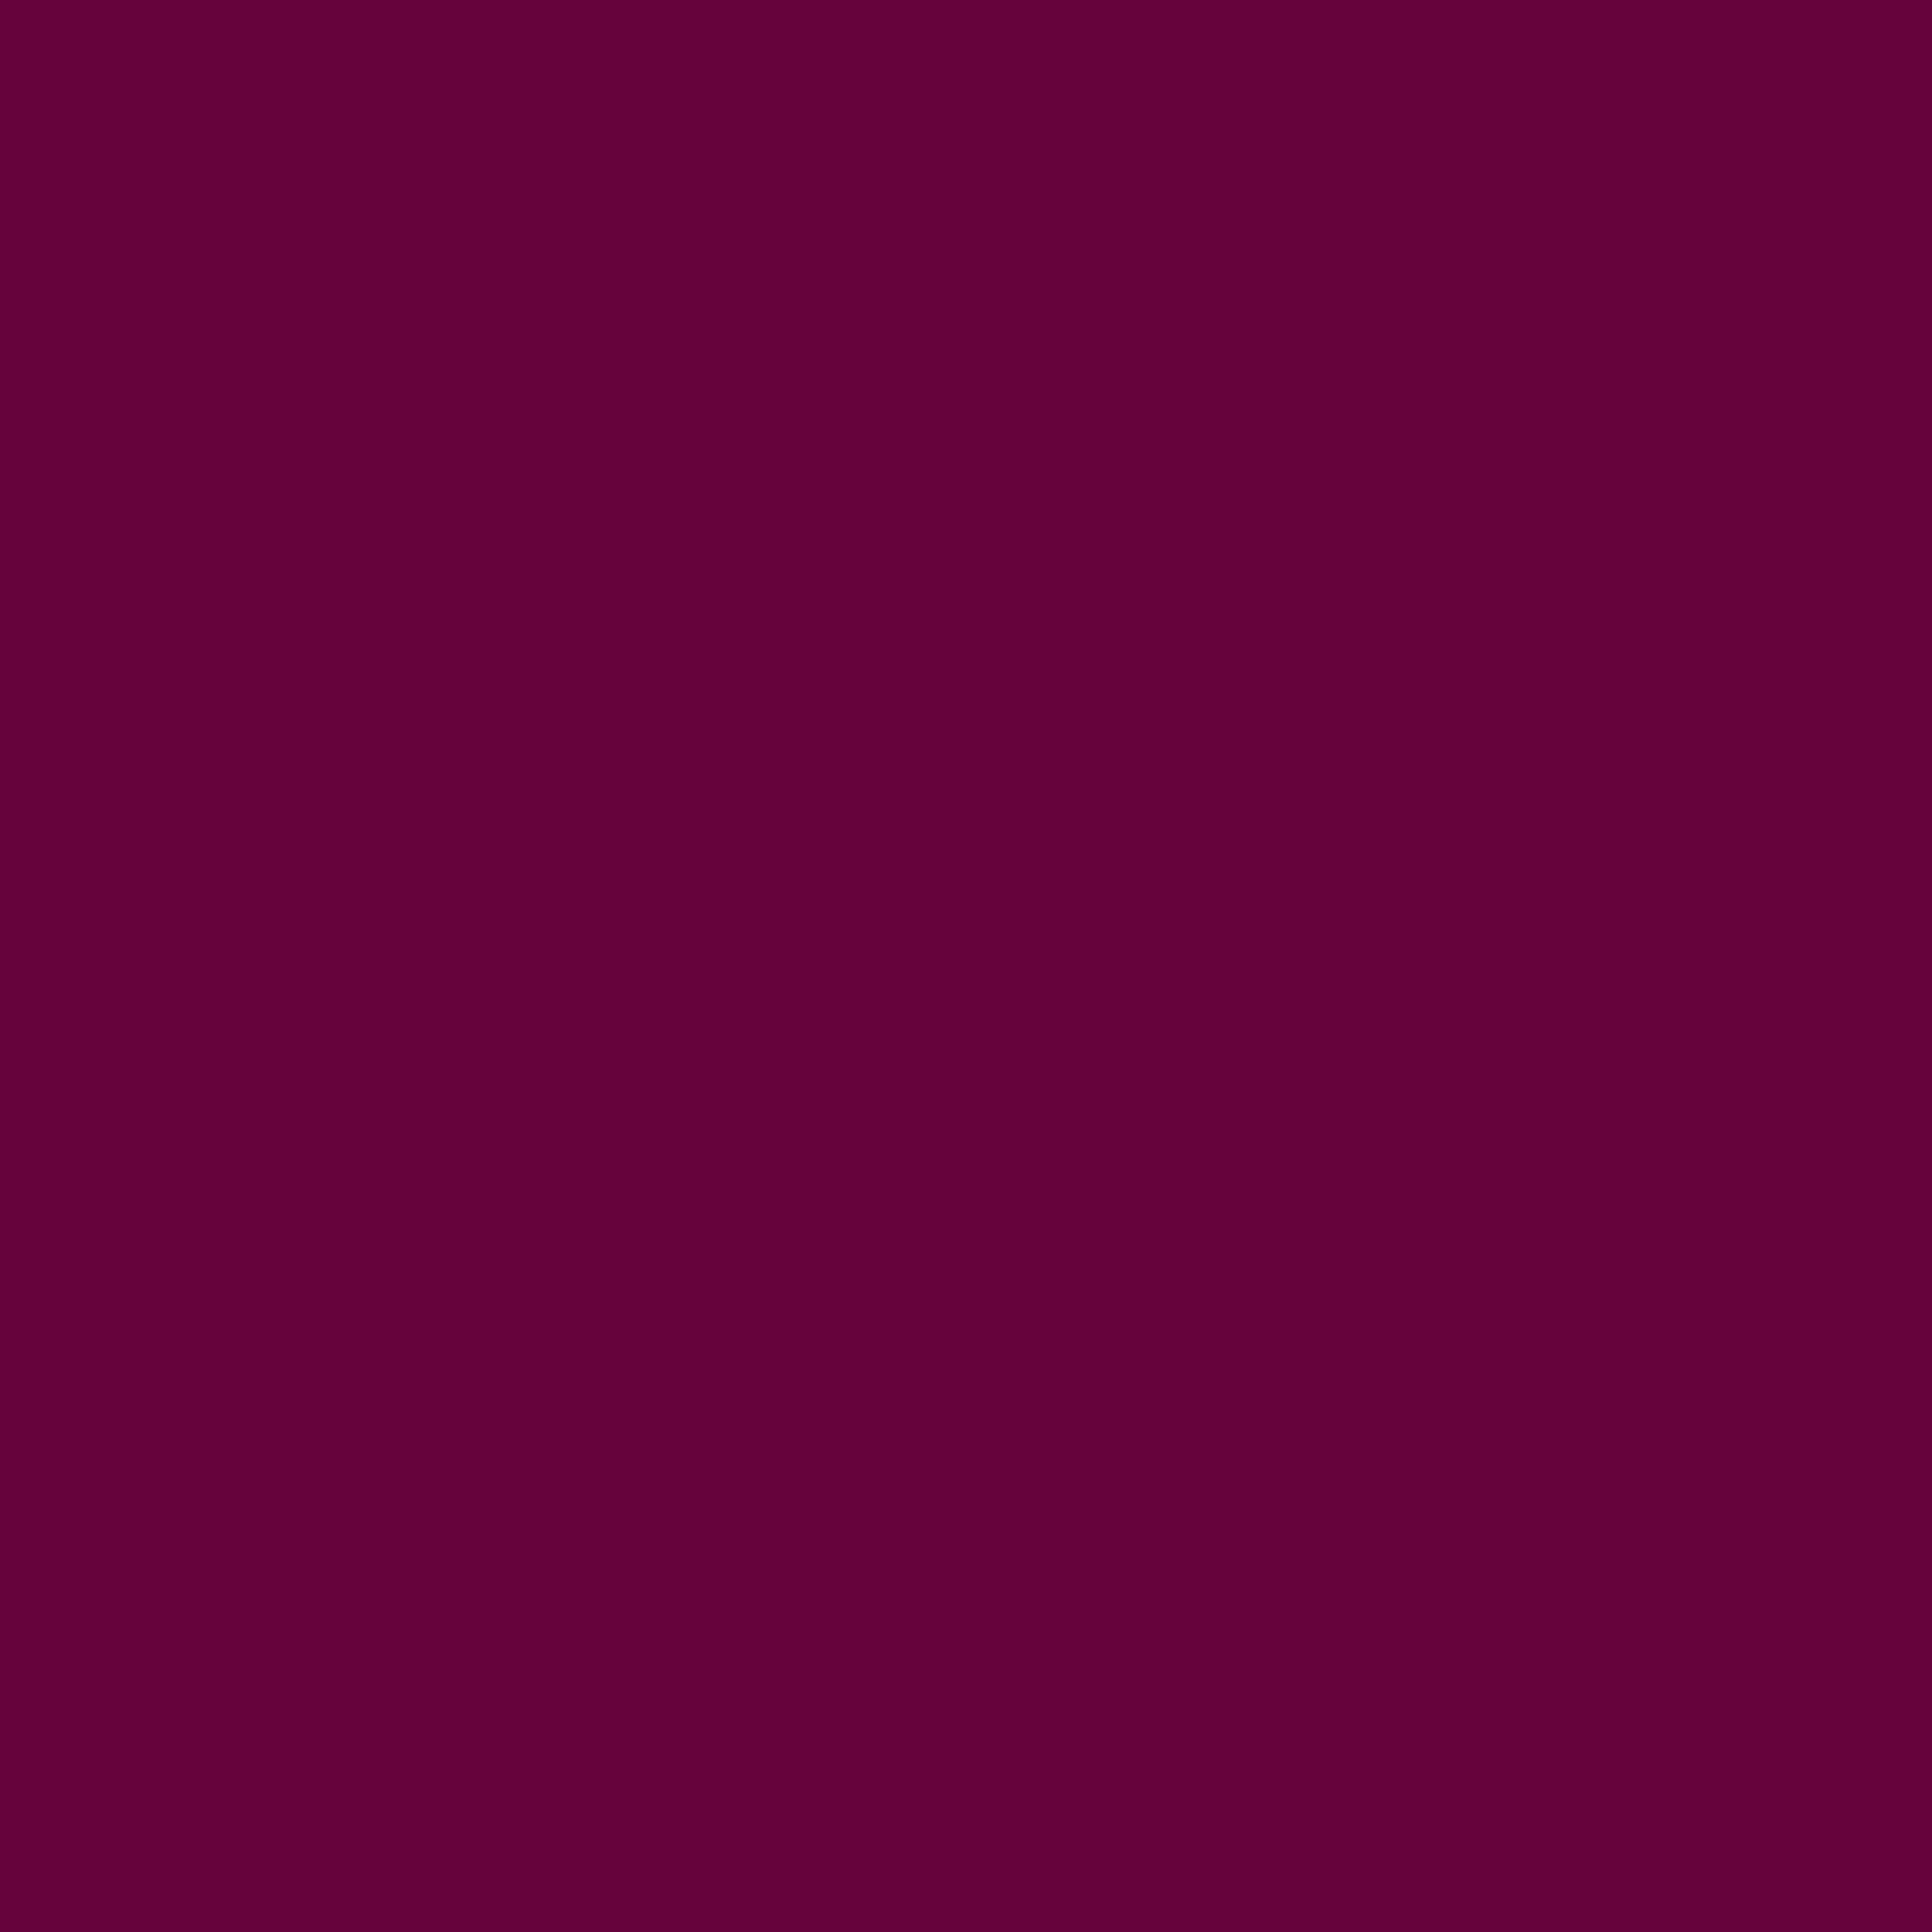 3600x3600 Imperial Purple Solid Color Background